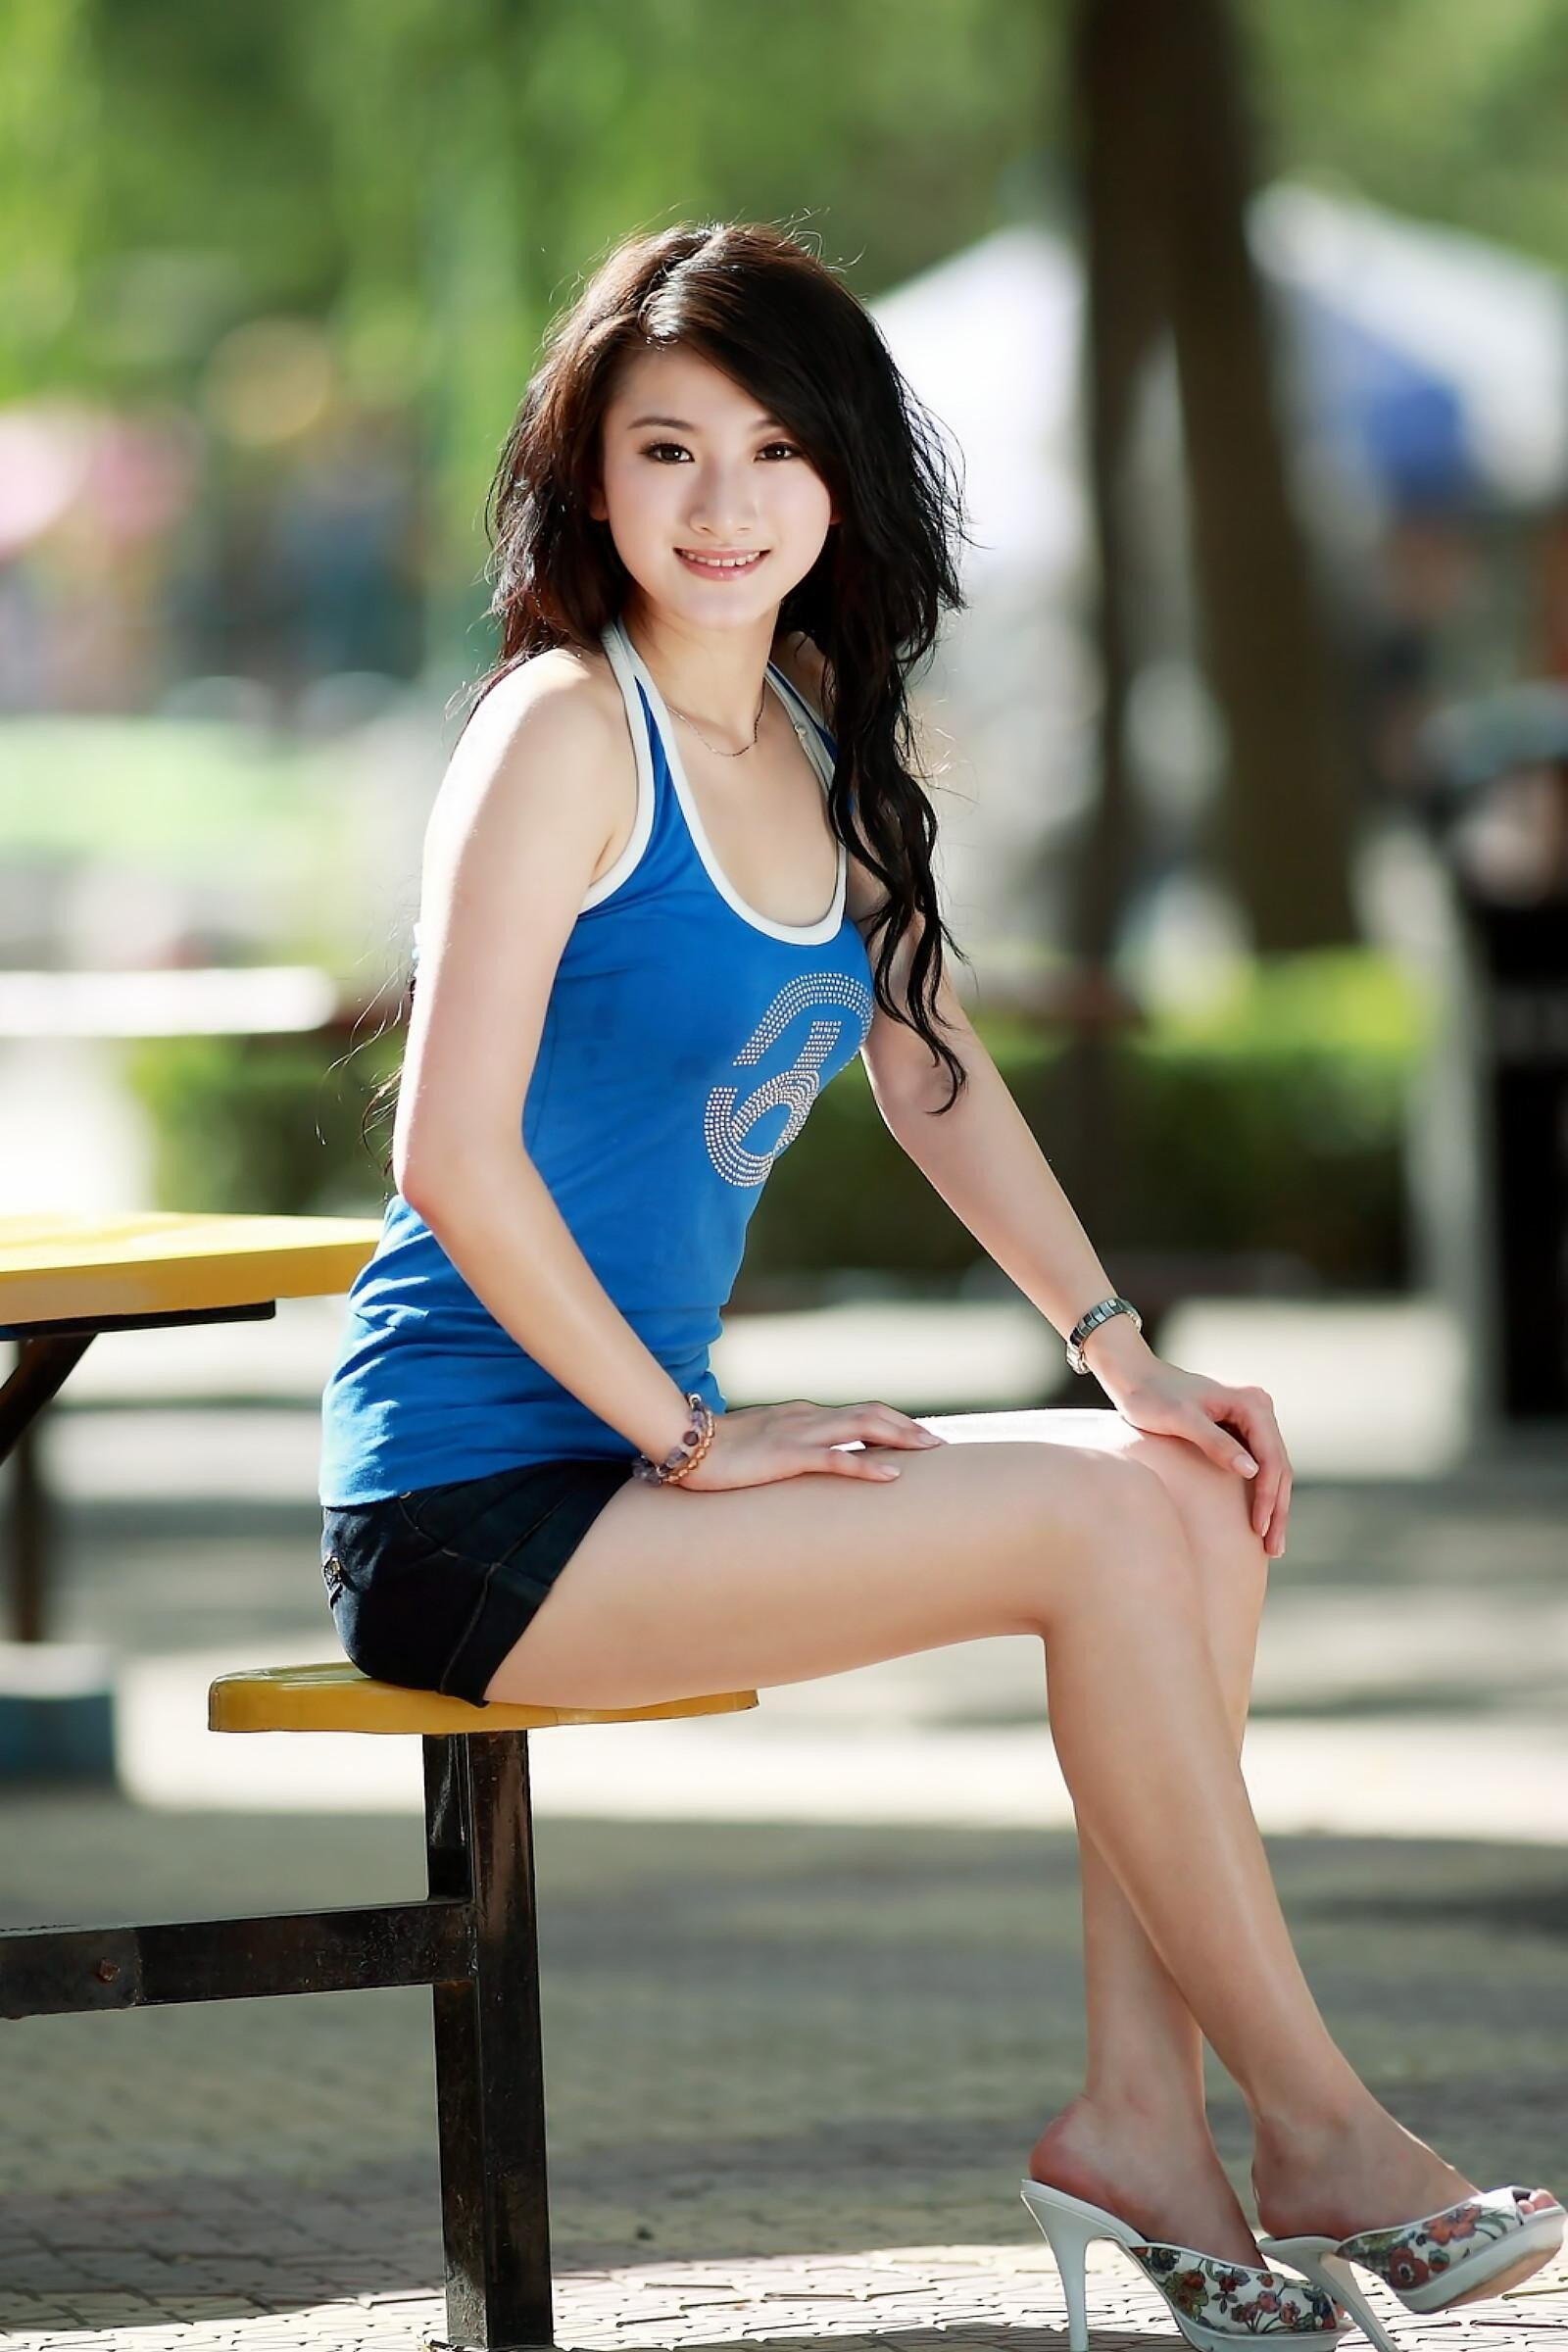 Pretty Girl Wallpaper Full Hd Women Asian High Heels Hd Wallpapers Desktop And